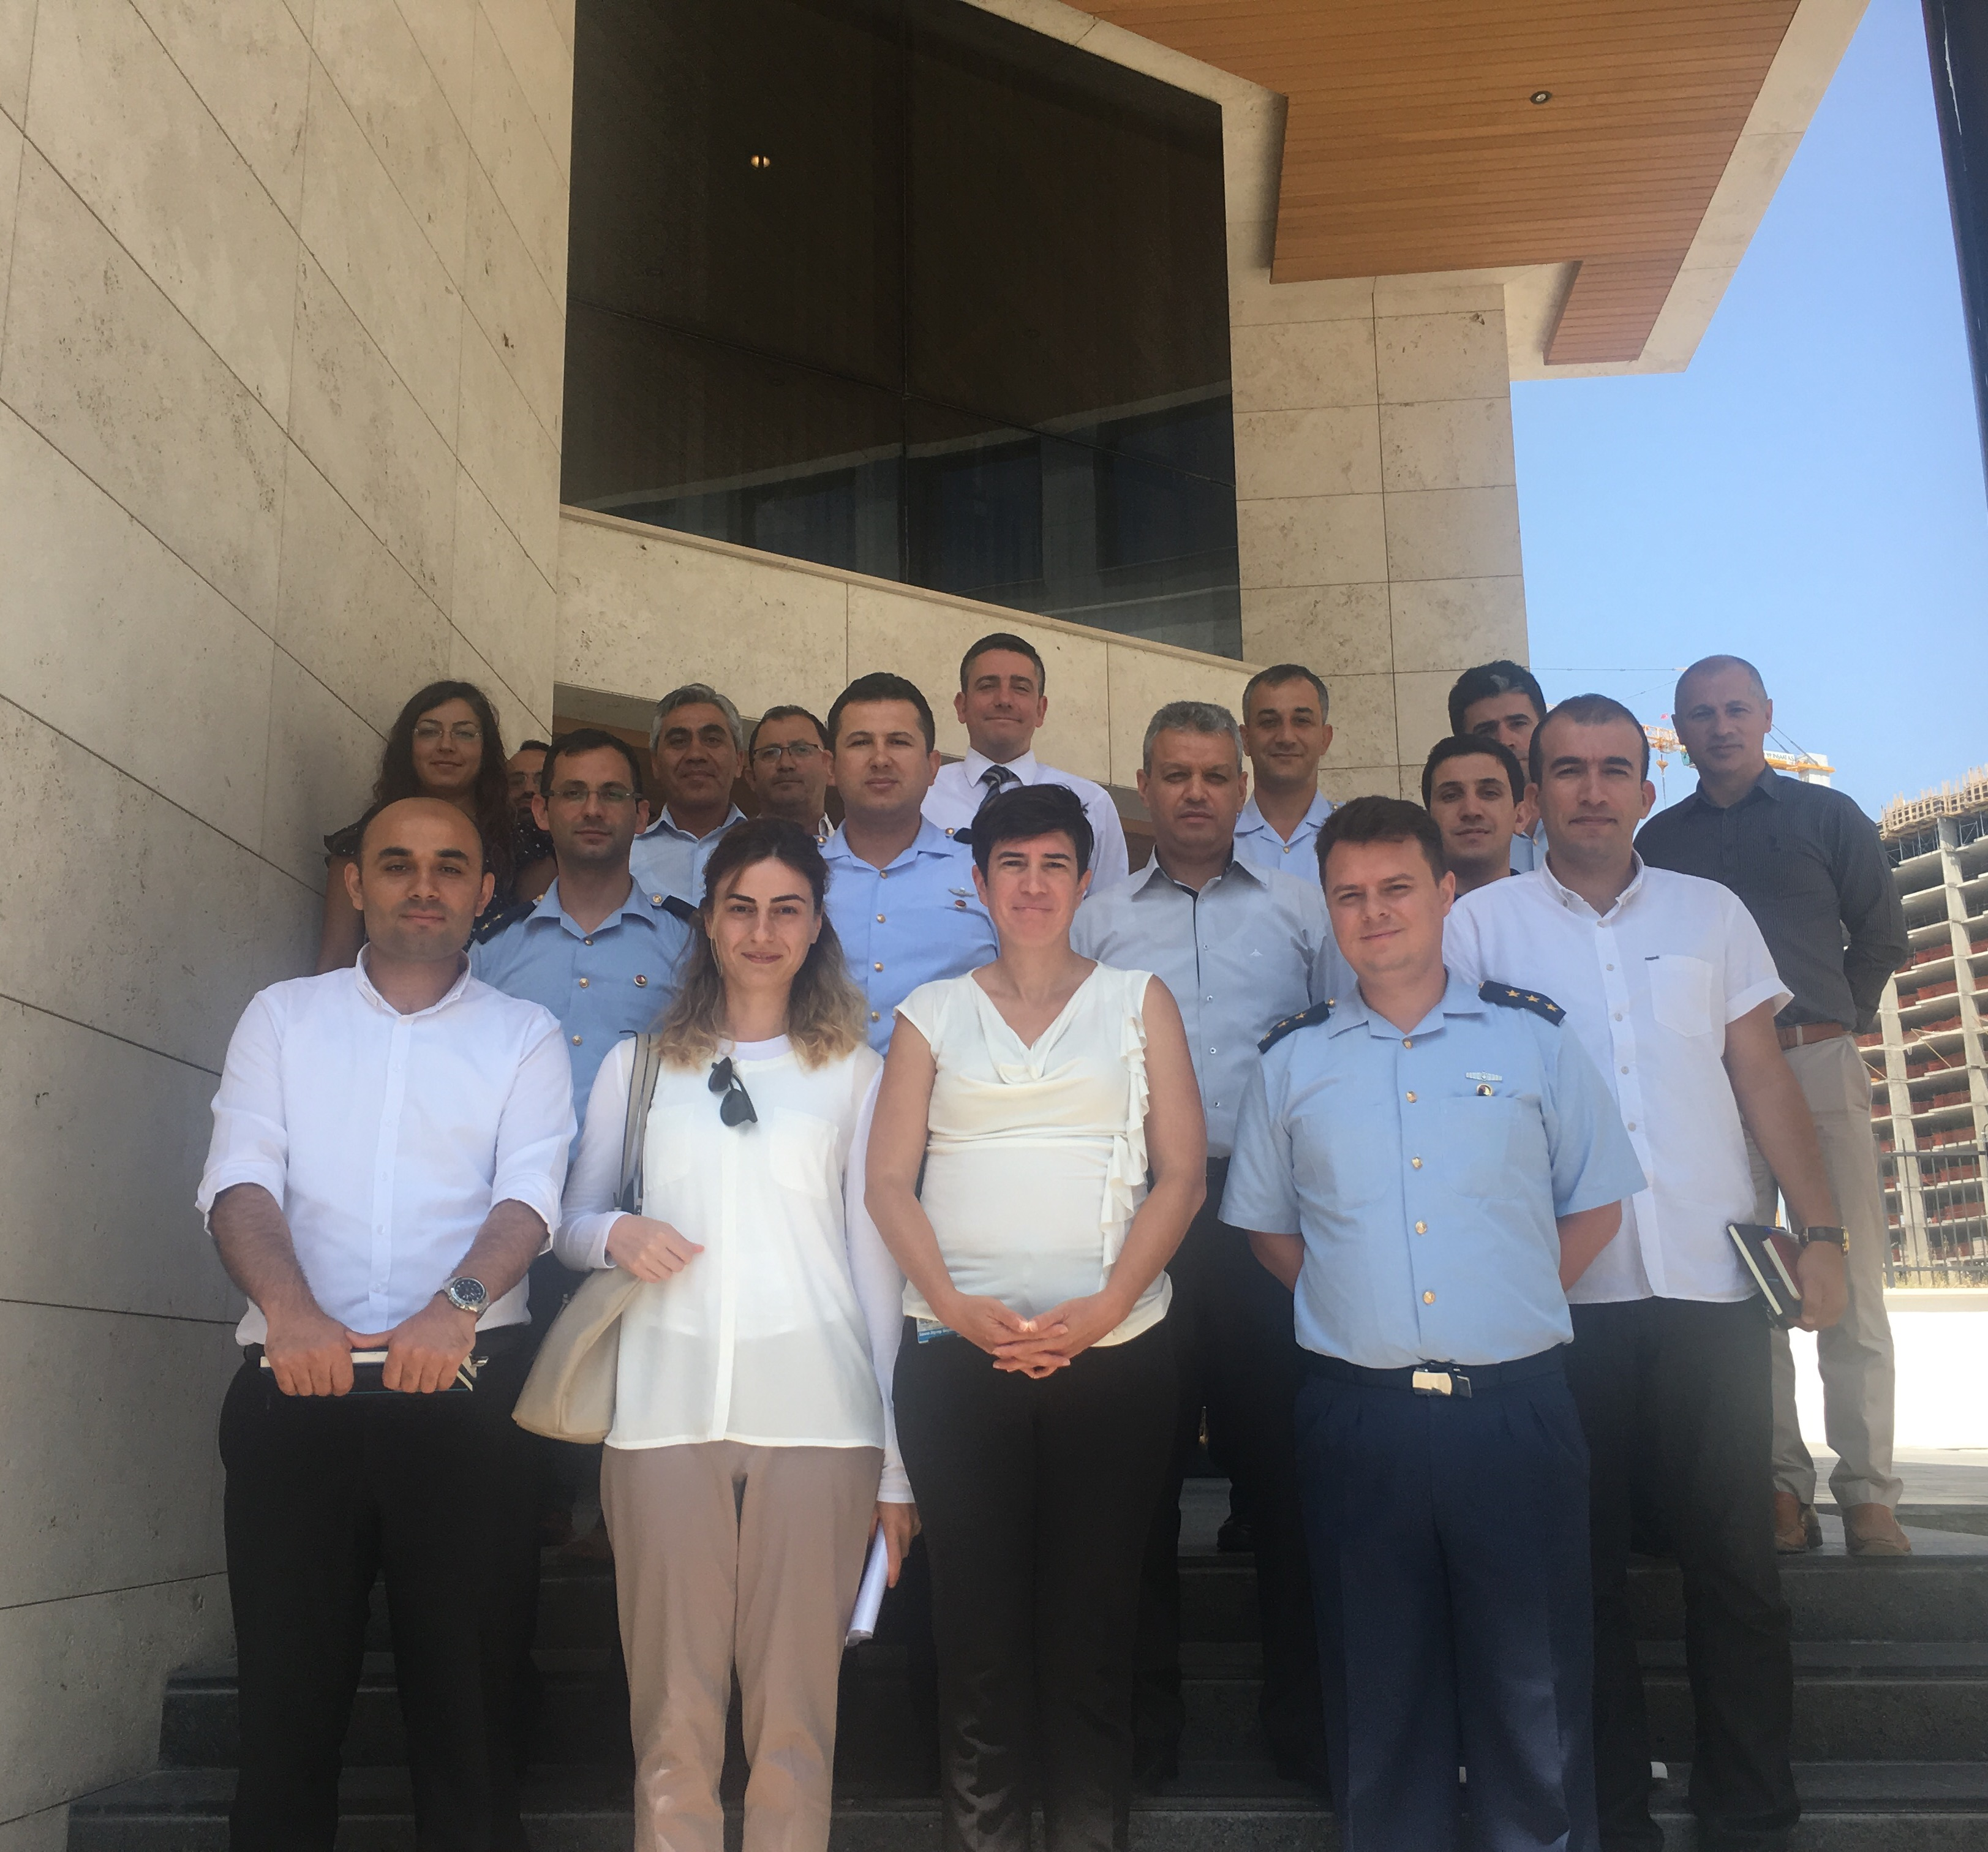 AIR DEFENSE NETWORK PROJECT 2nd PHASE INITIAL MEETING HAS BEEN ACHIEVED...